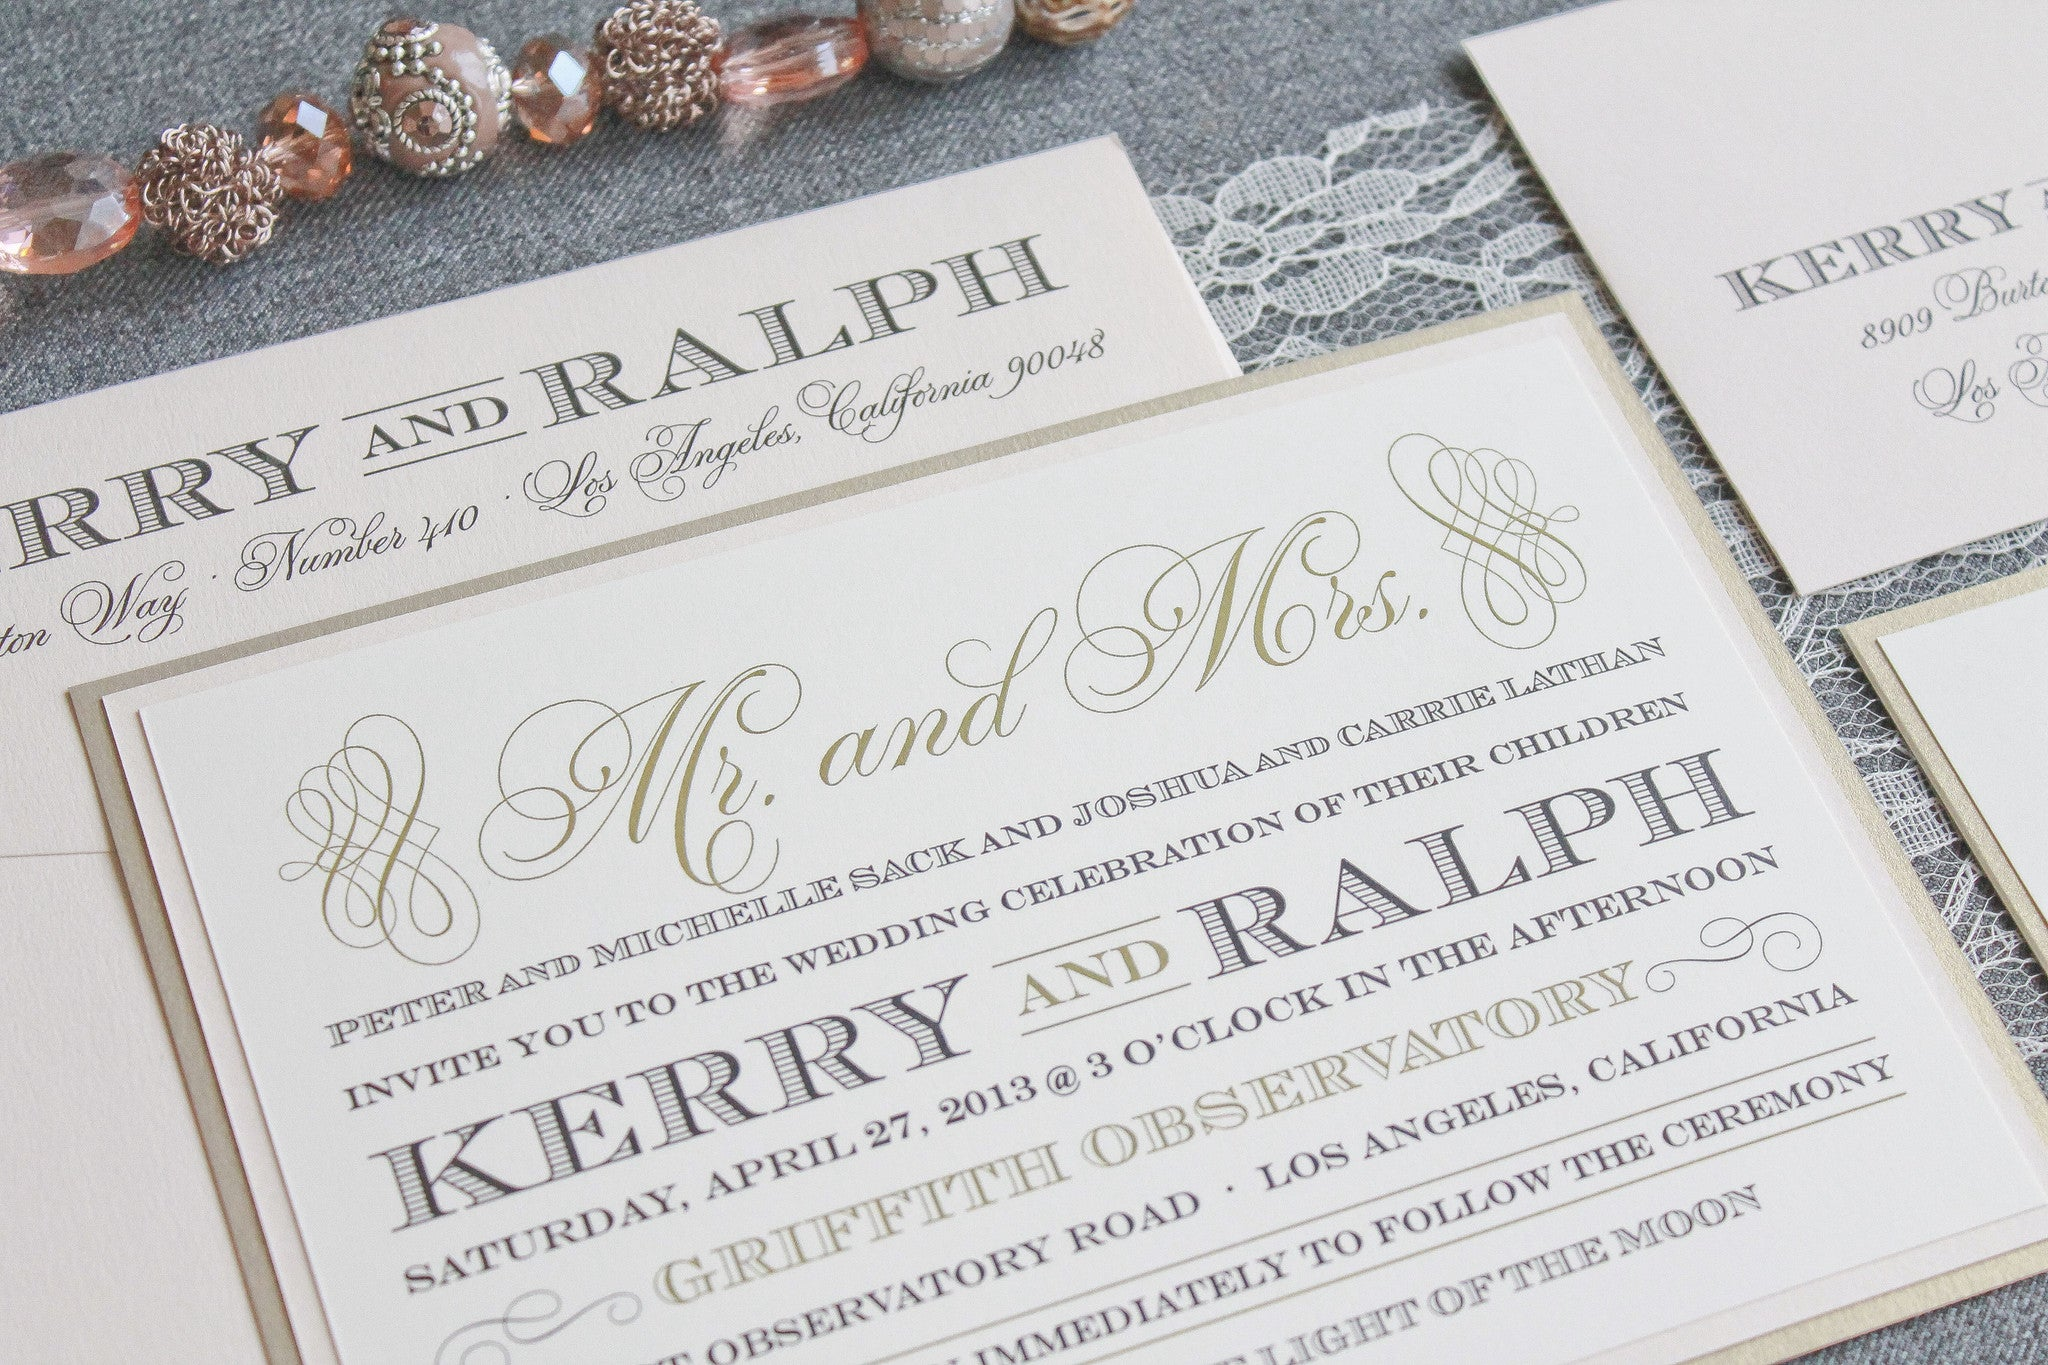 Kerry and Ralph Blush/Chapagne – Invited by LamaWorks